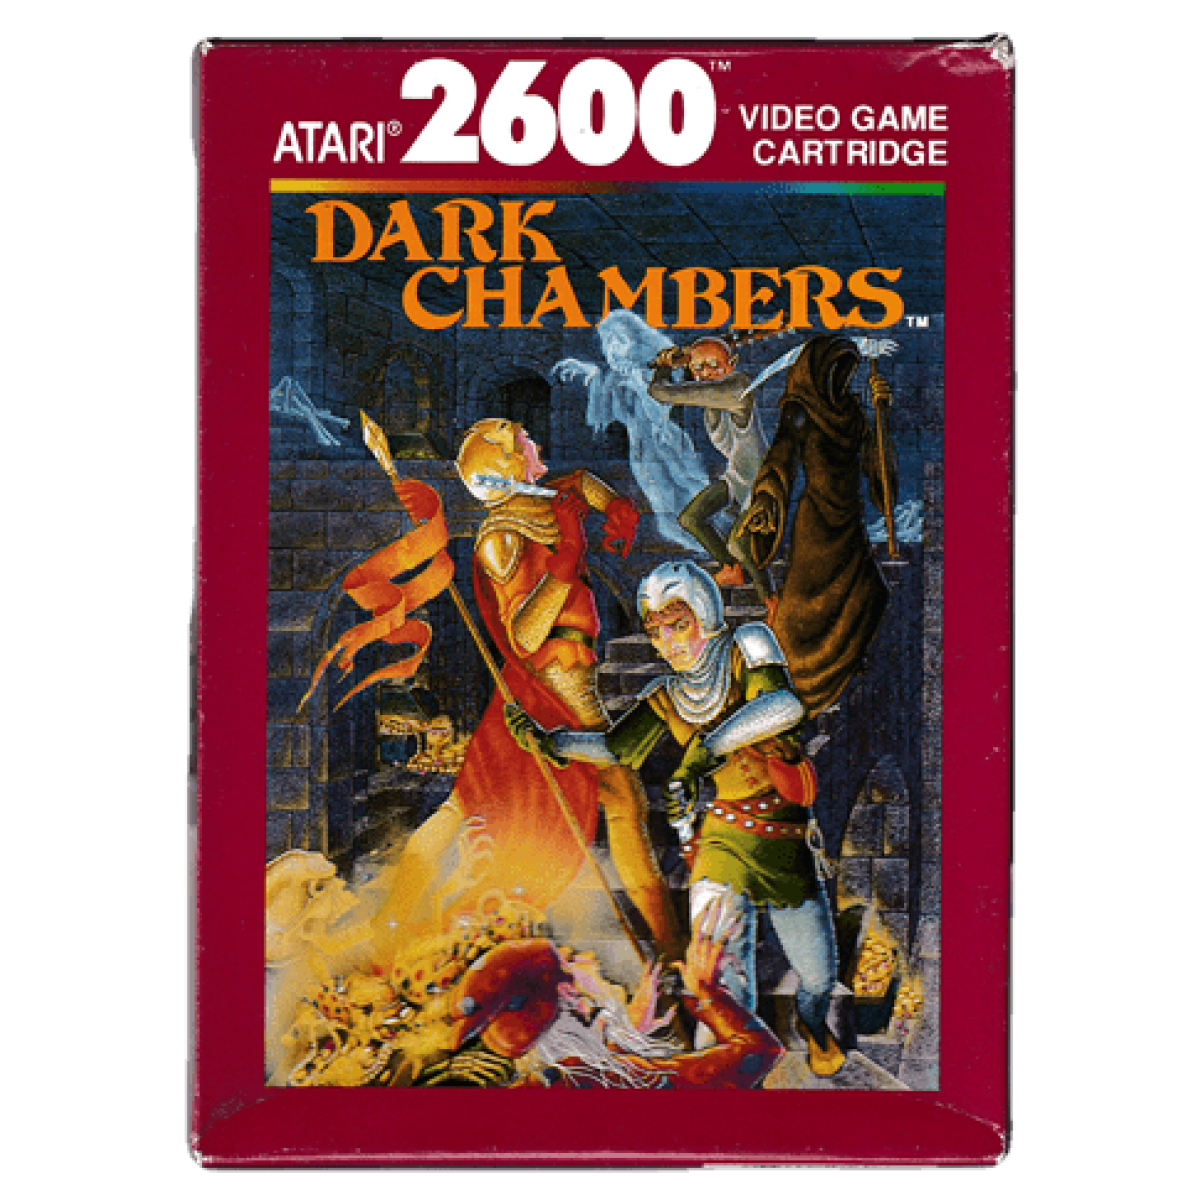 [Proto]The Depths of Darkness - Page 2 Dark-chambers-2600-box-1-1200x1200